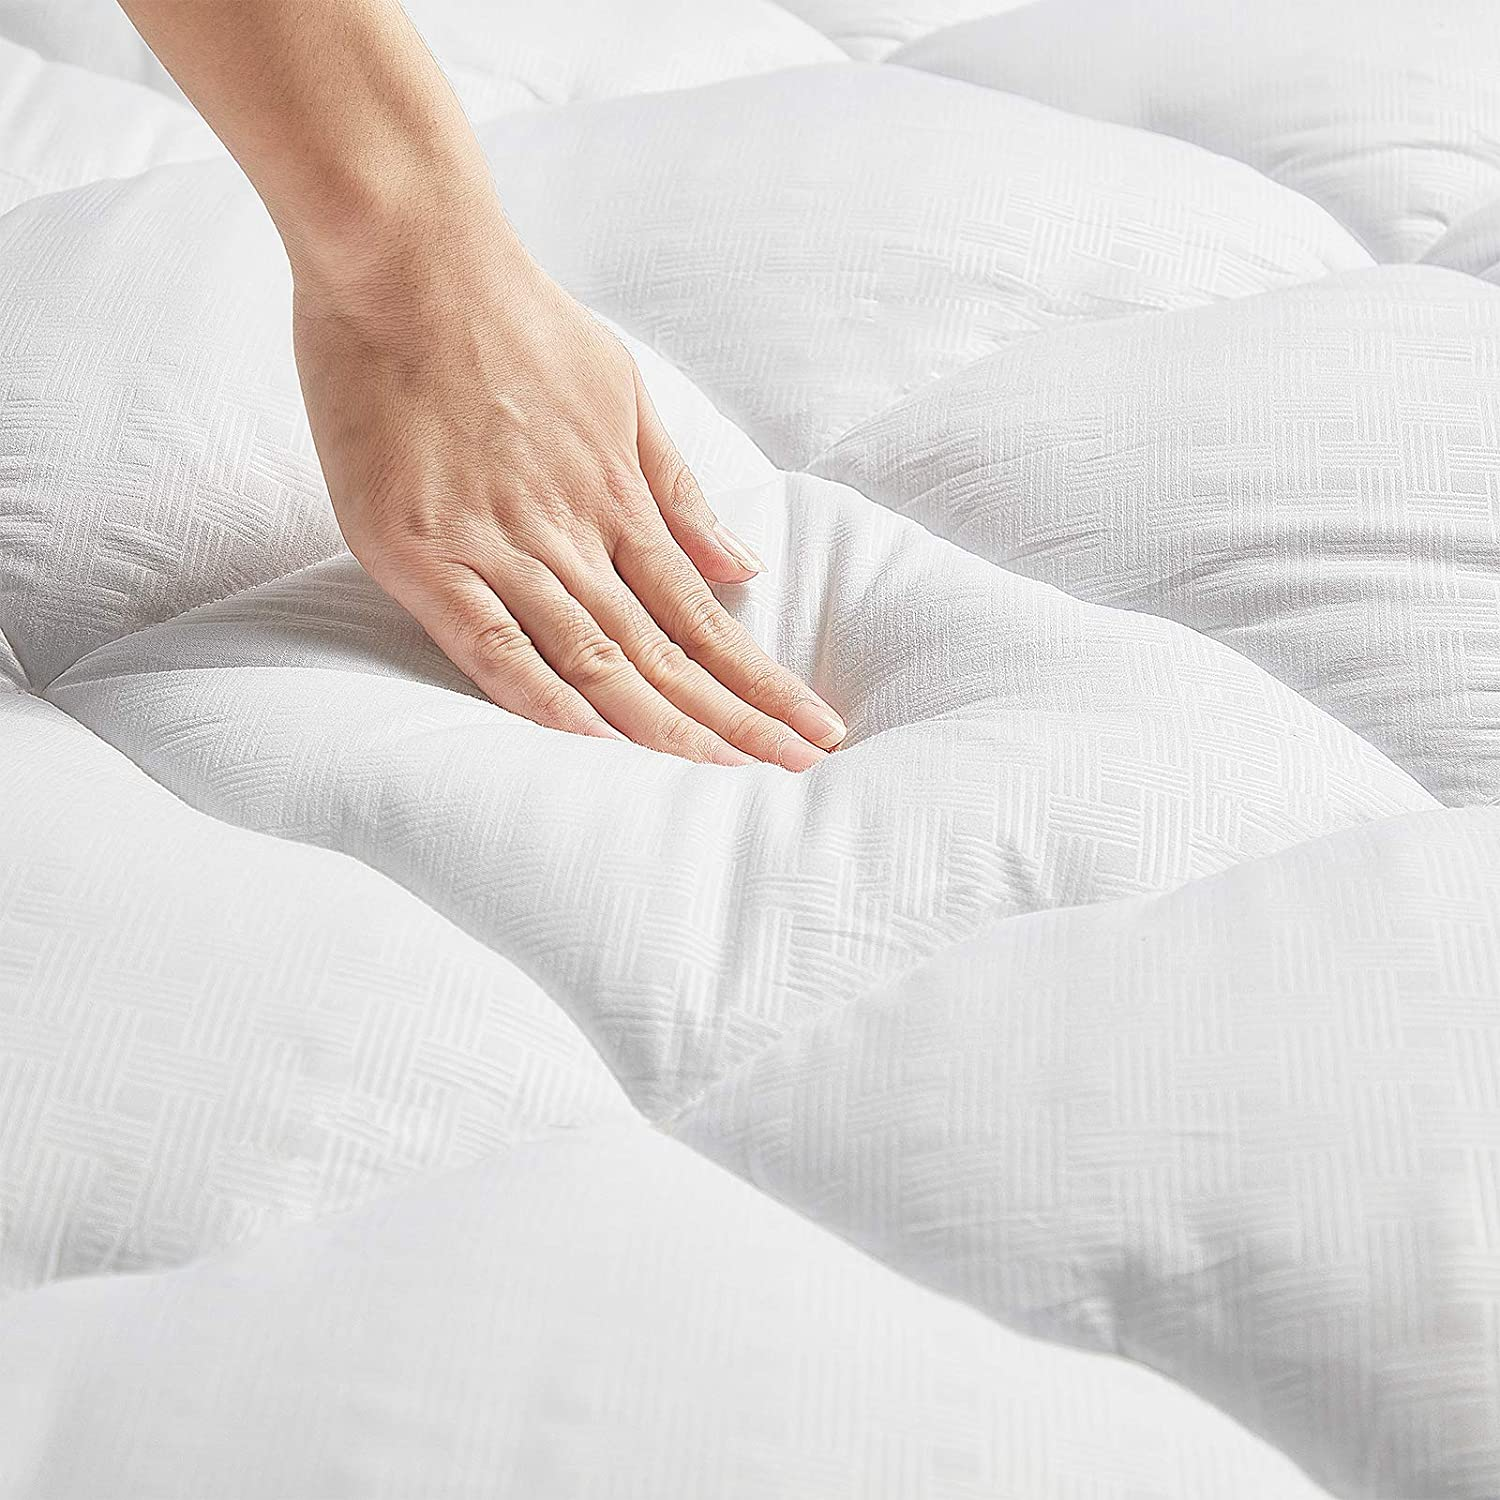 LANDERLY Cal King Mattress Pad Pillow Top Mattress Cover Quilted Fitted Mattress Topper with 8-21